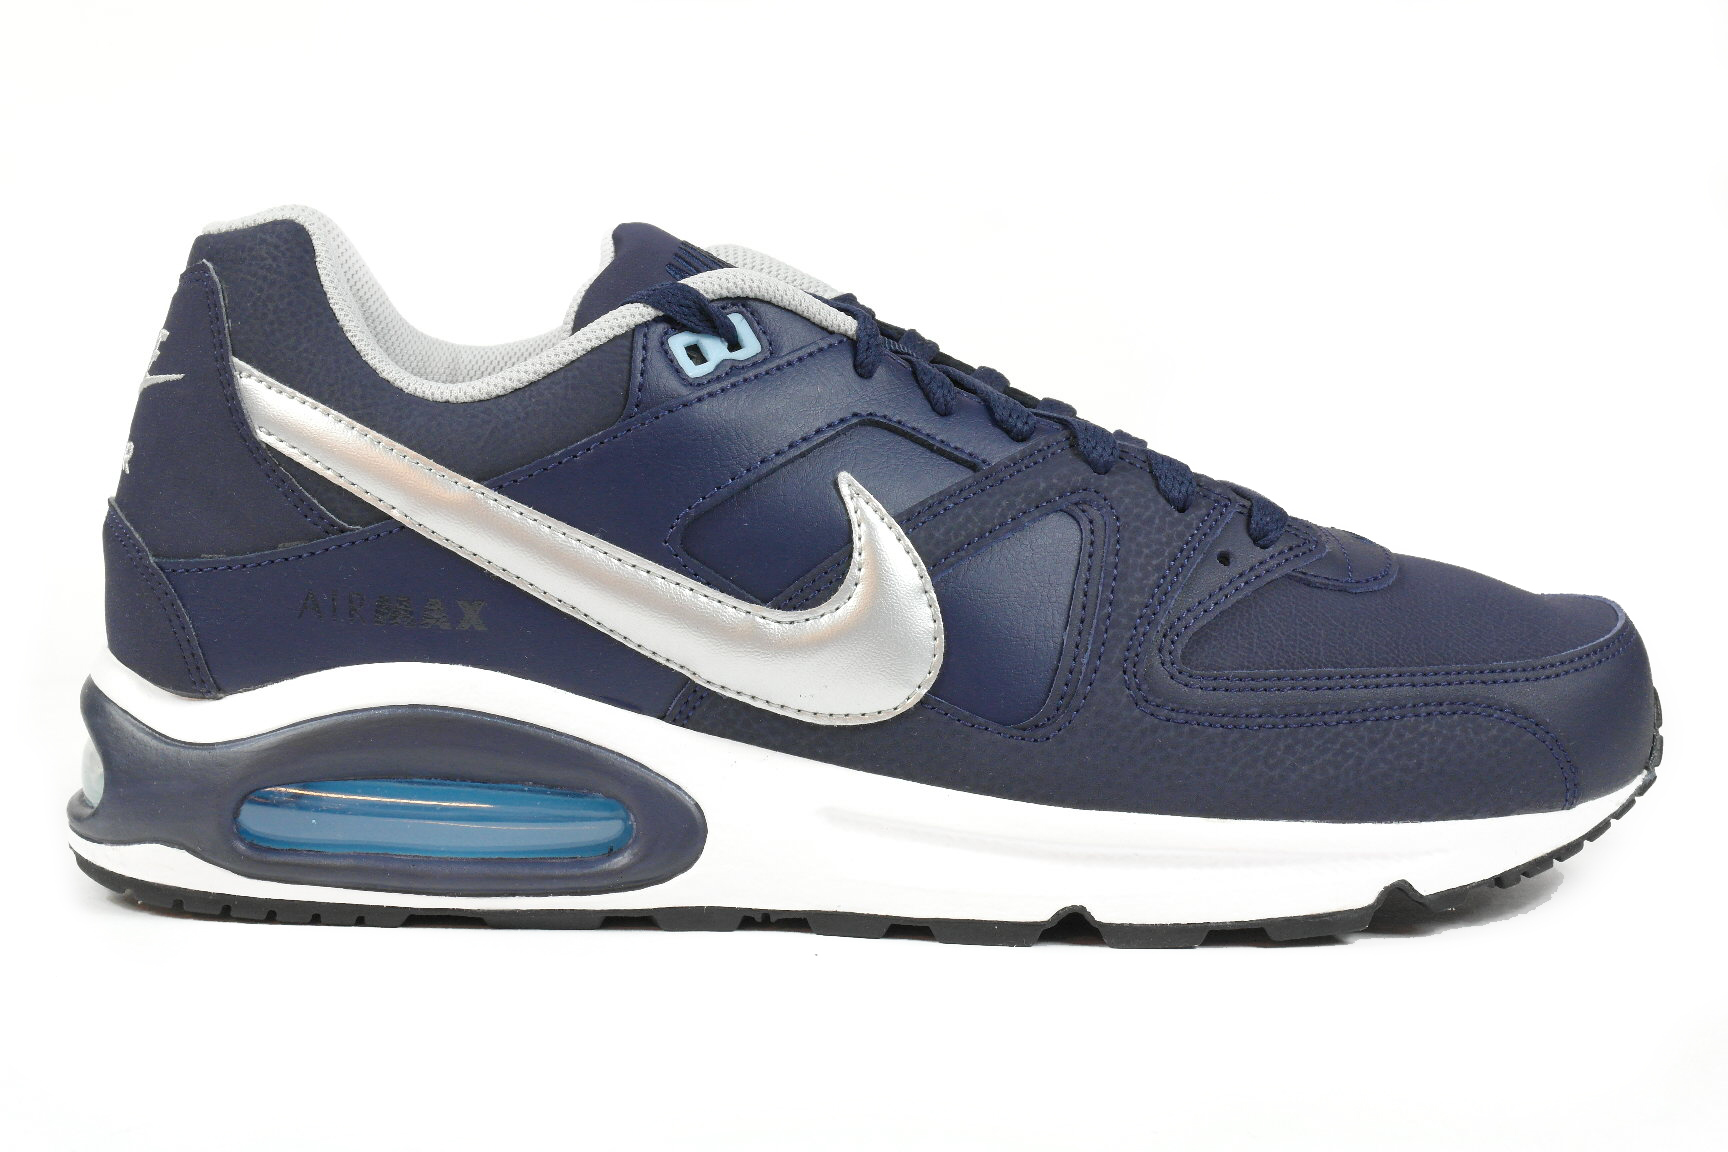 wholesale dealer 40830 3269b nike-air-max-command-heren-sneakers-marine 1500x1500 22884.png